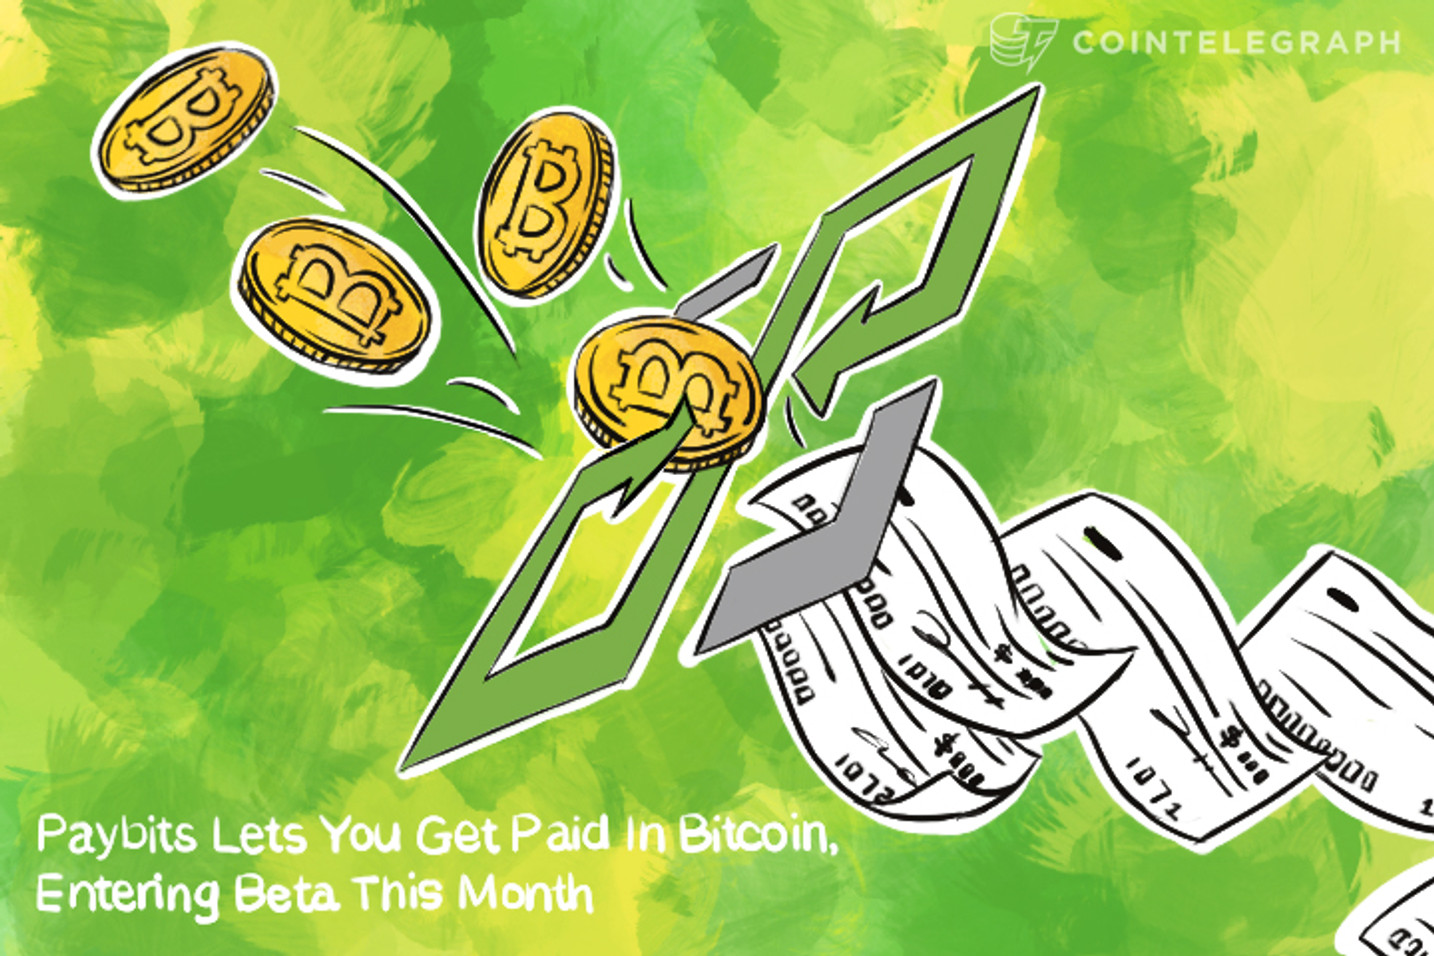 Paybits Lets You Get Paid In Bitcoin, Launches Beta This Month